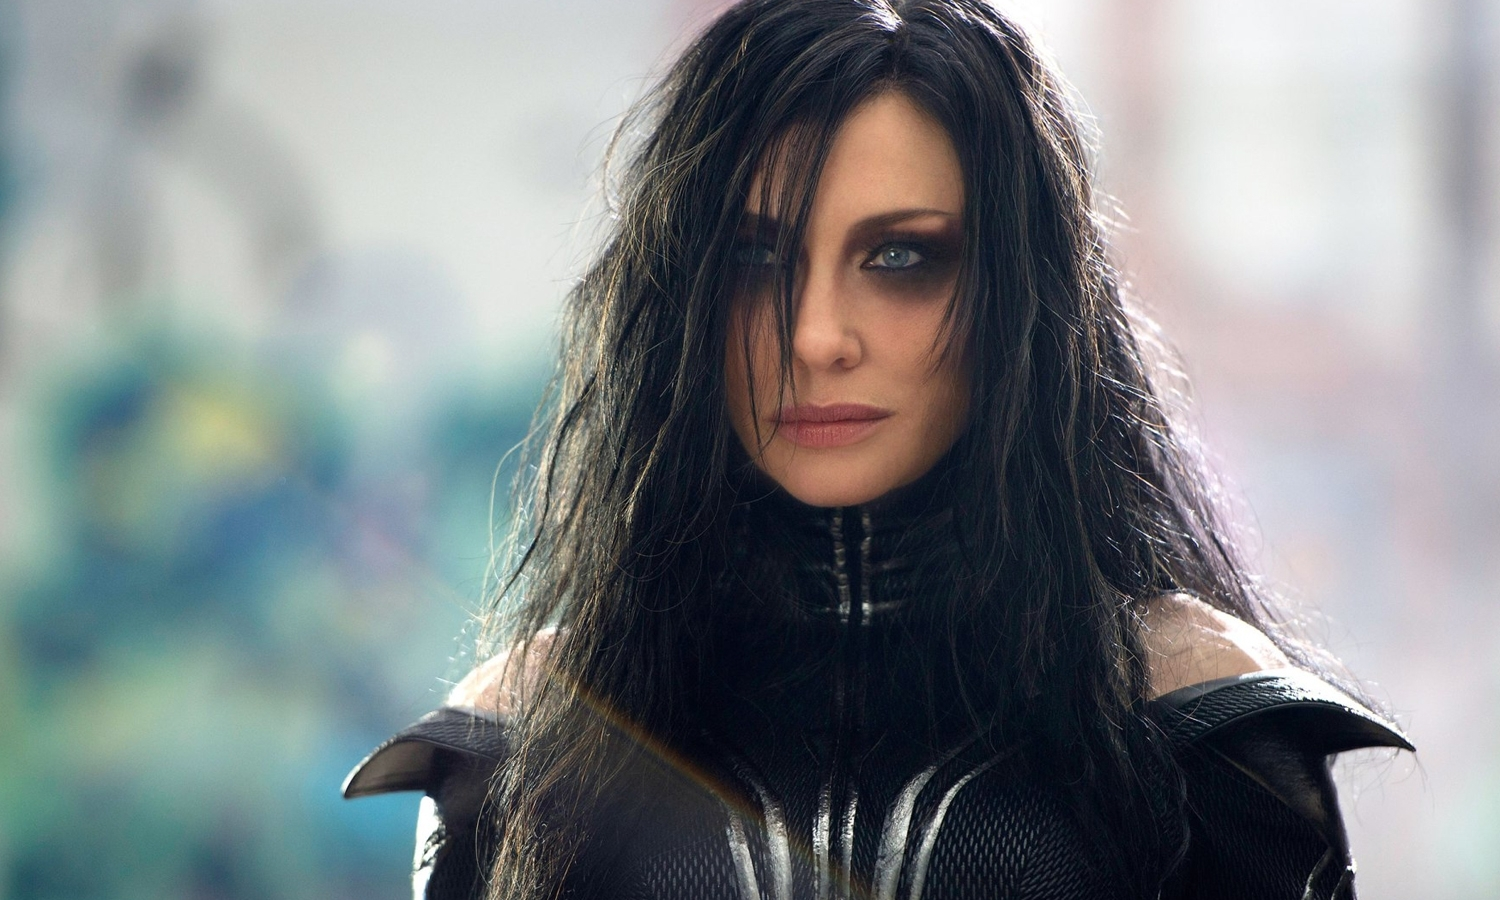 Watch Hela Destroy Thor's Hammer In This New Thor: Ragnarok Clip